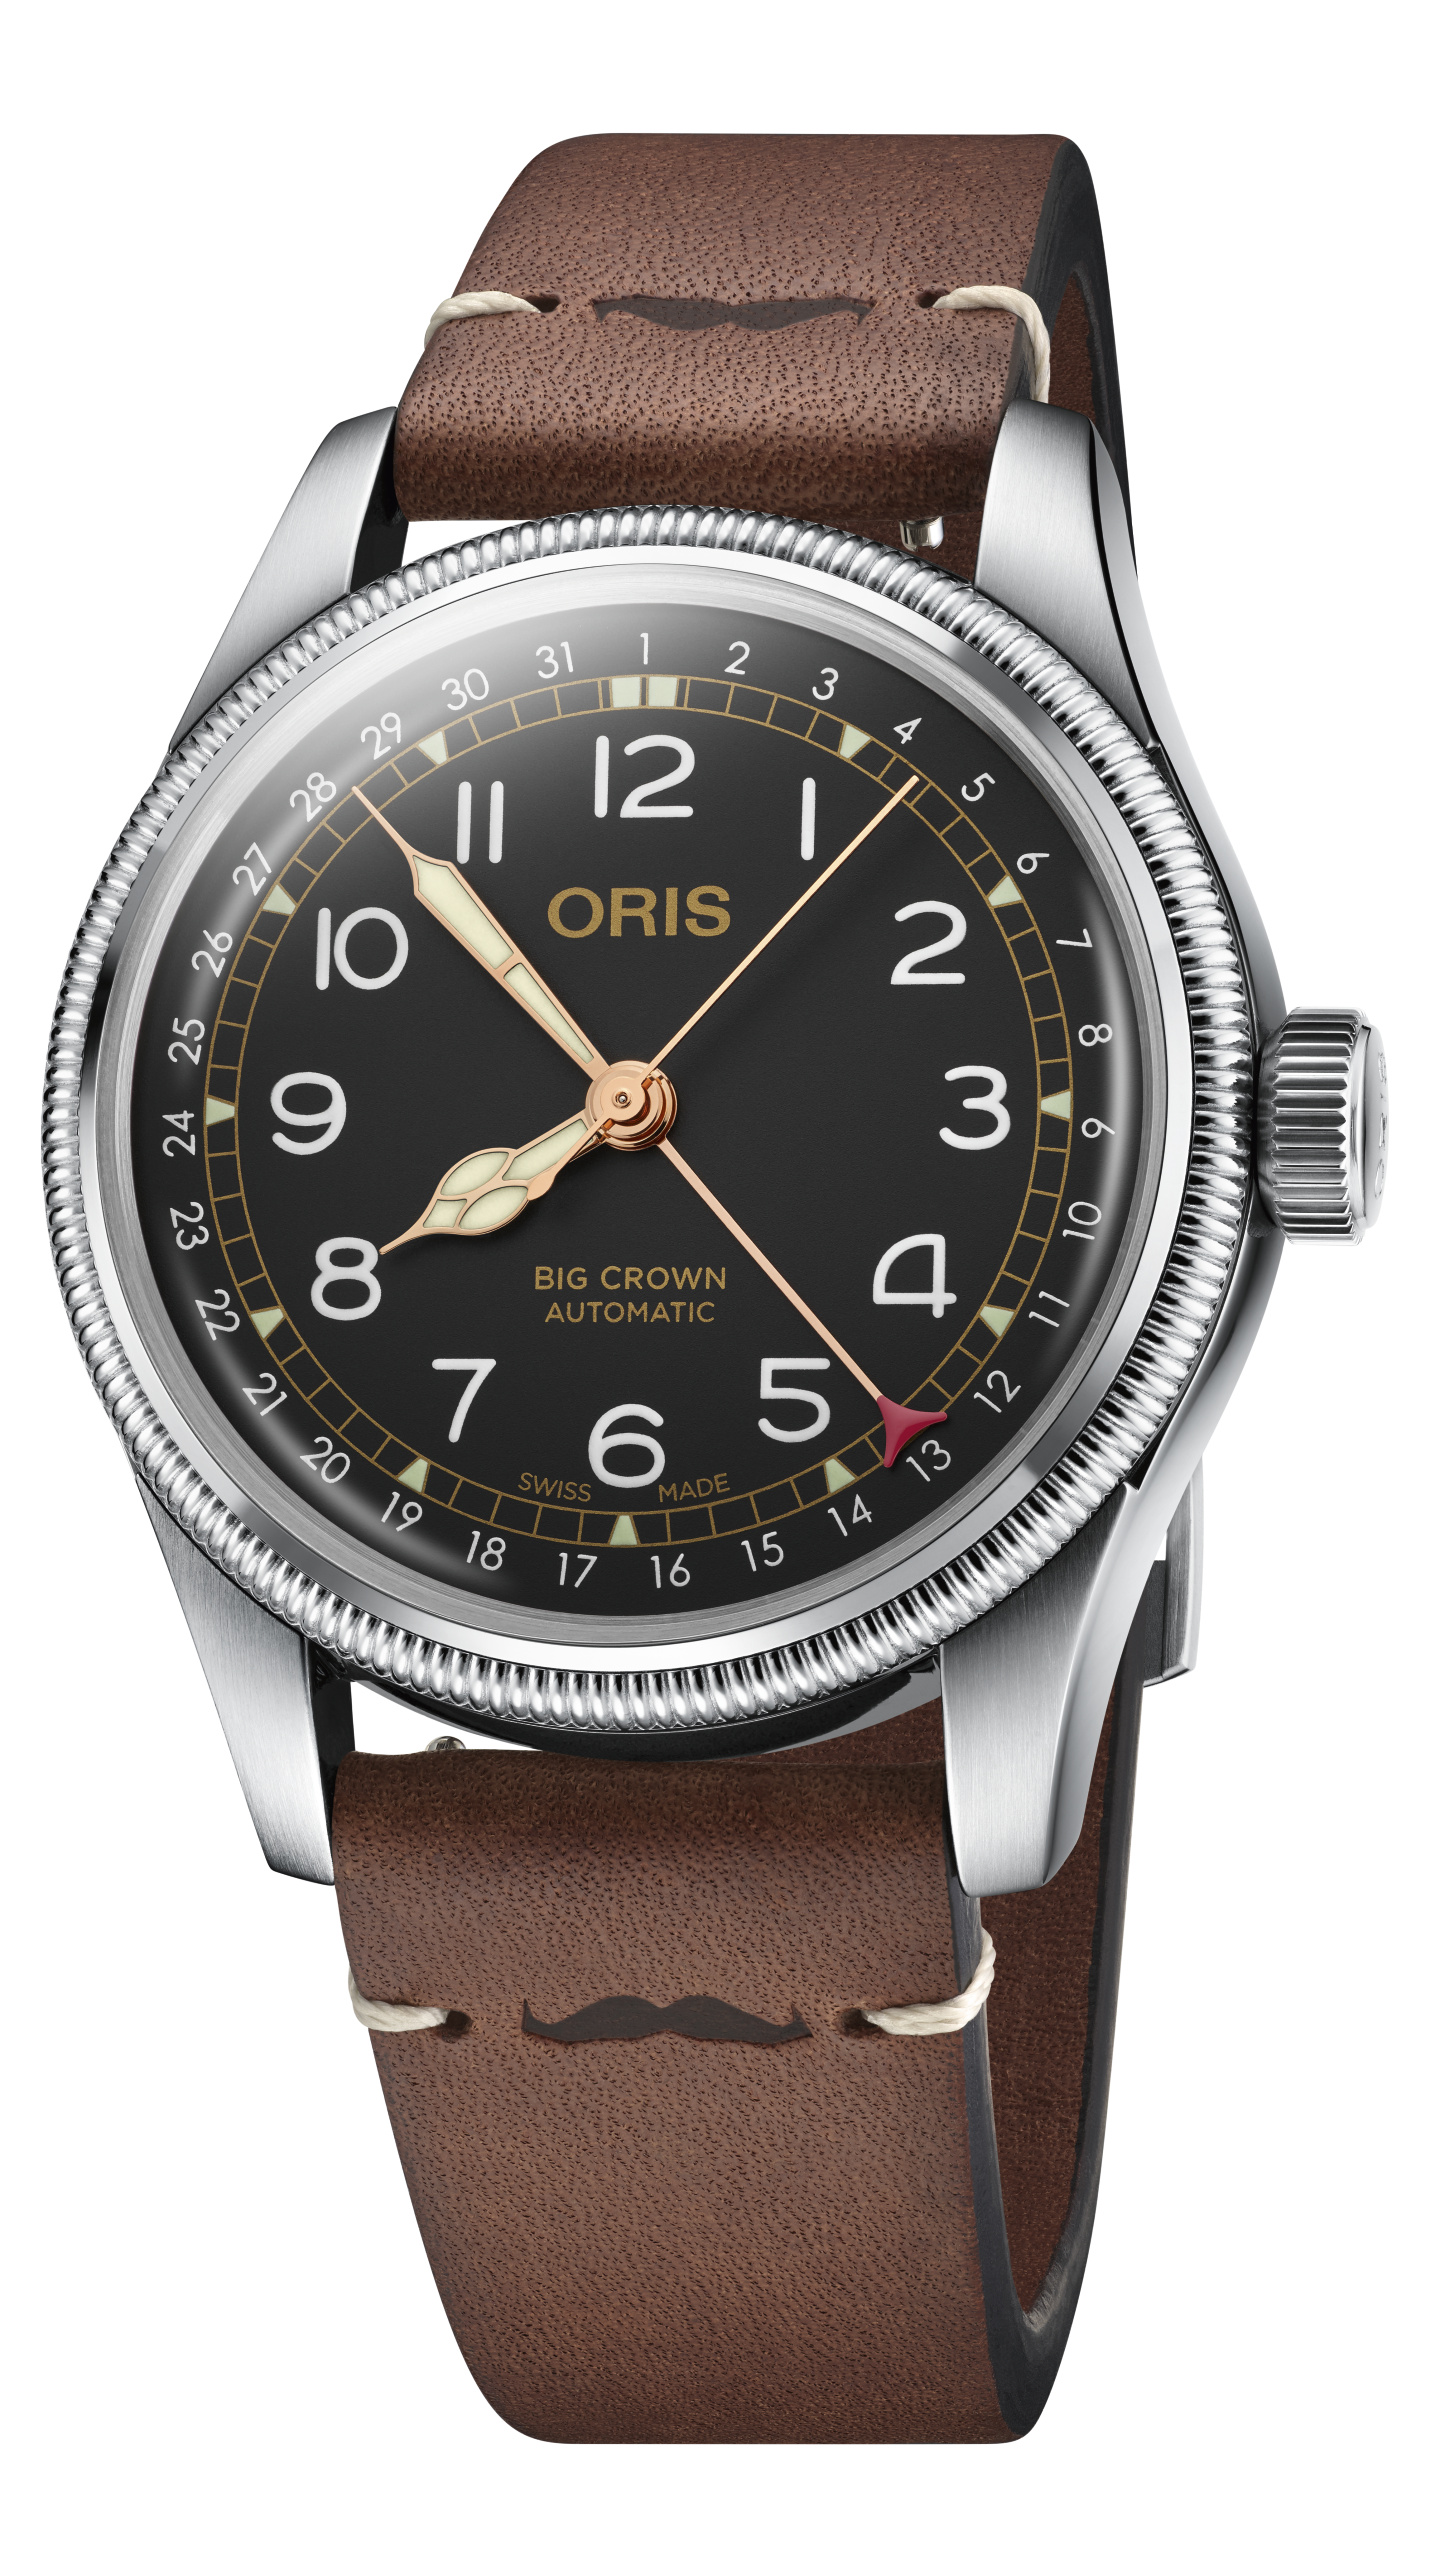 01 754 7741 4037-Set LS - Oris Movember Edition